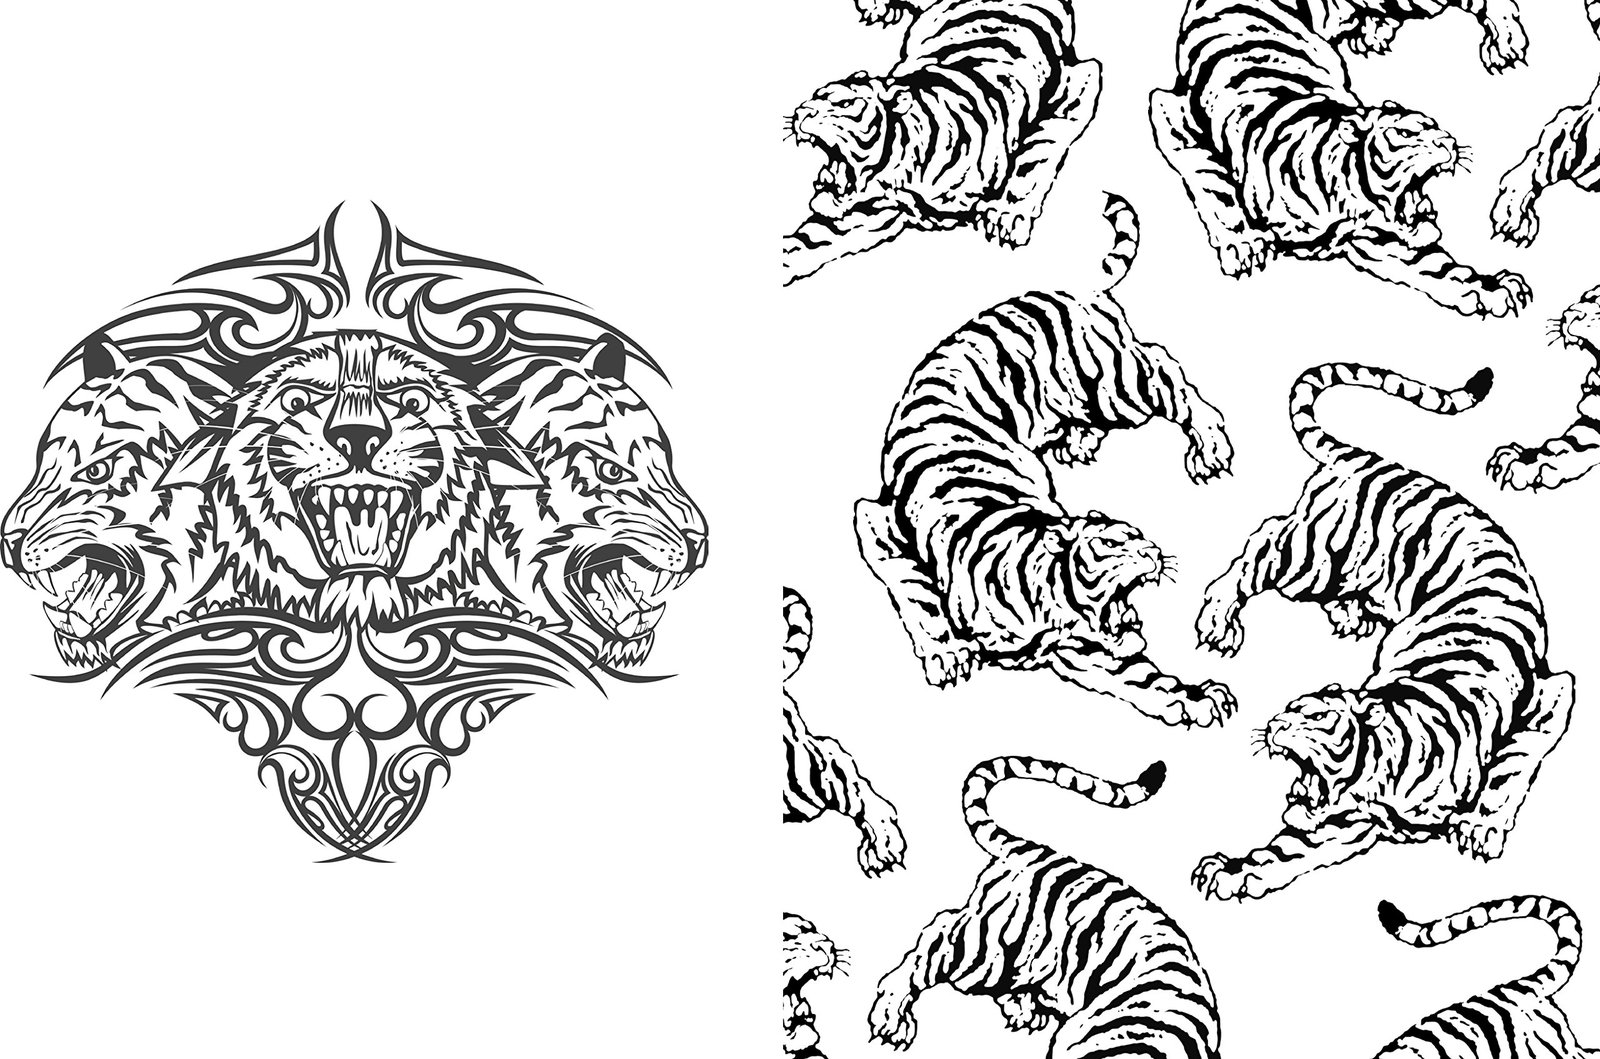 The Coloring Book Tattoo -  tattoo colouring book by beverley lawson image